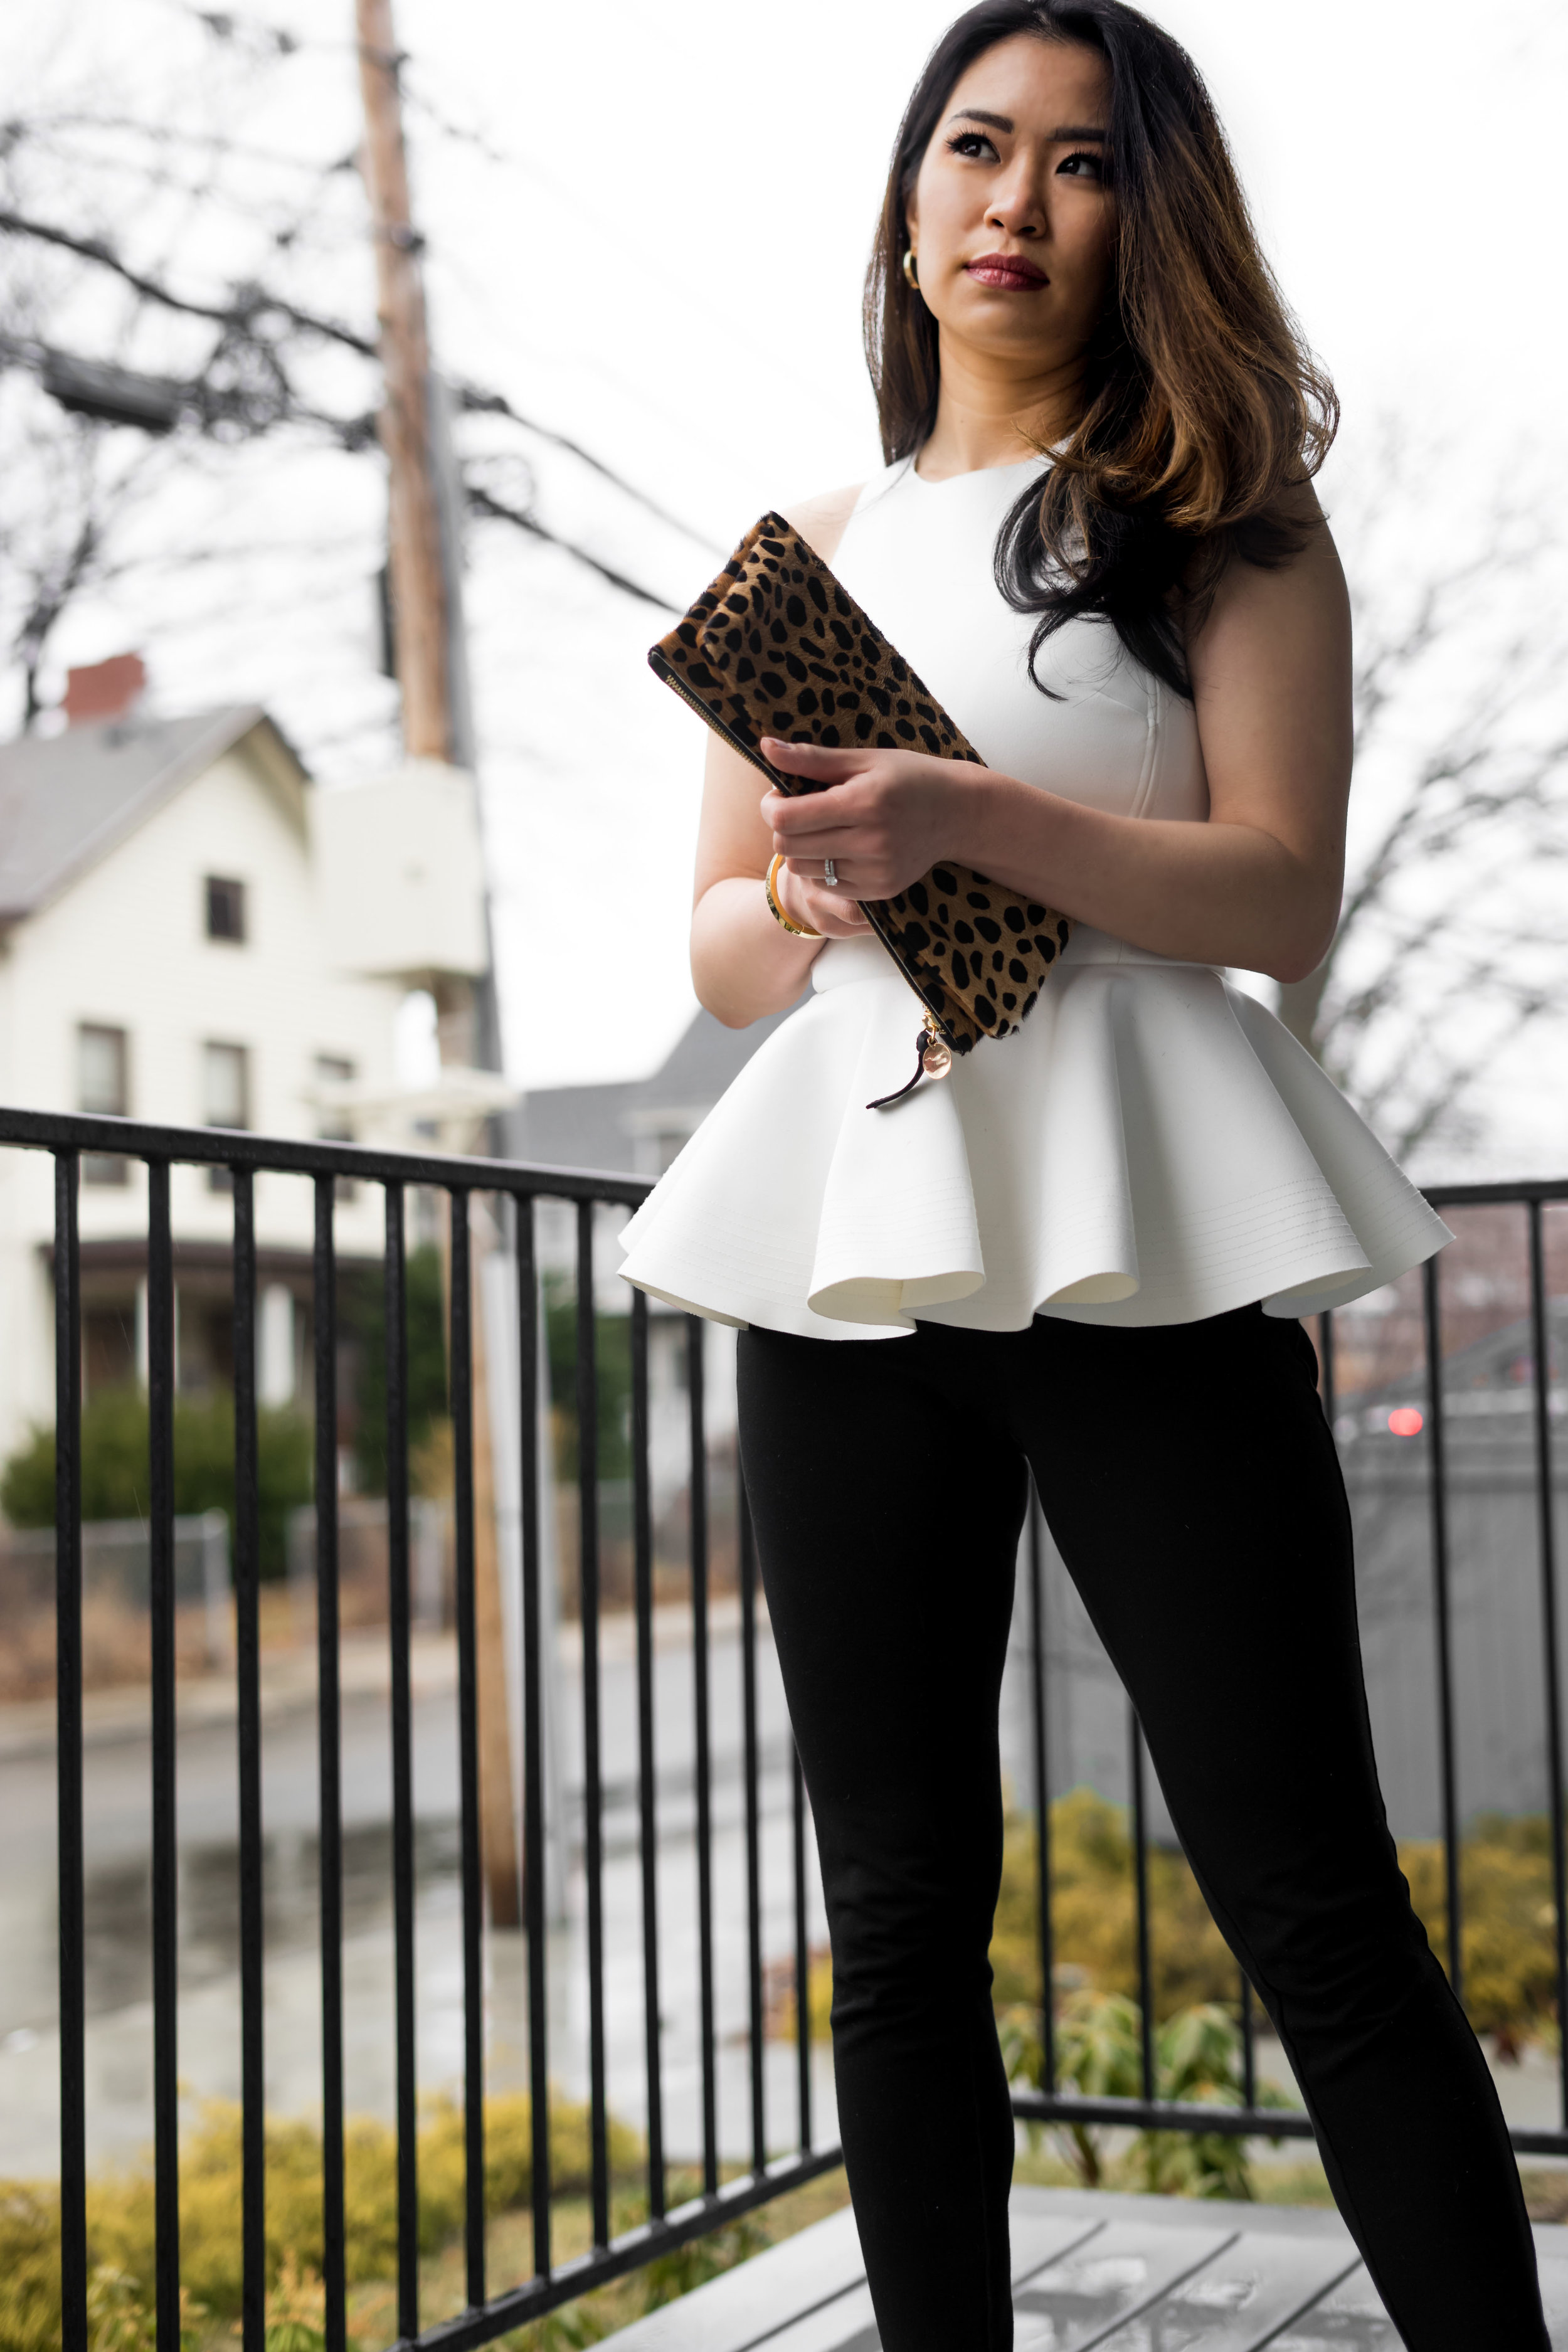 Stand out with White Peplum Top: TheNinesBlog.com - A Boston Blog